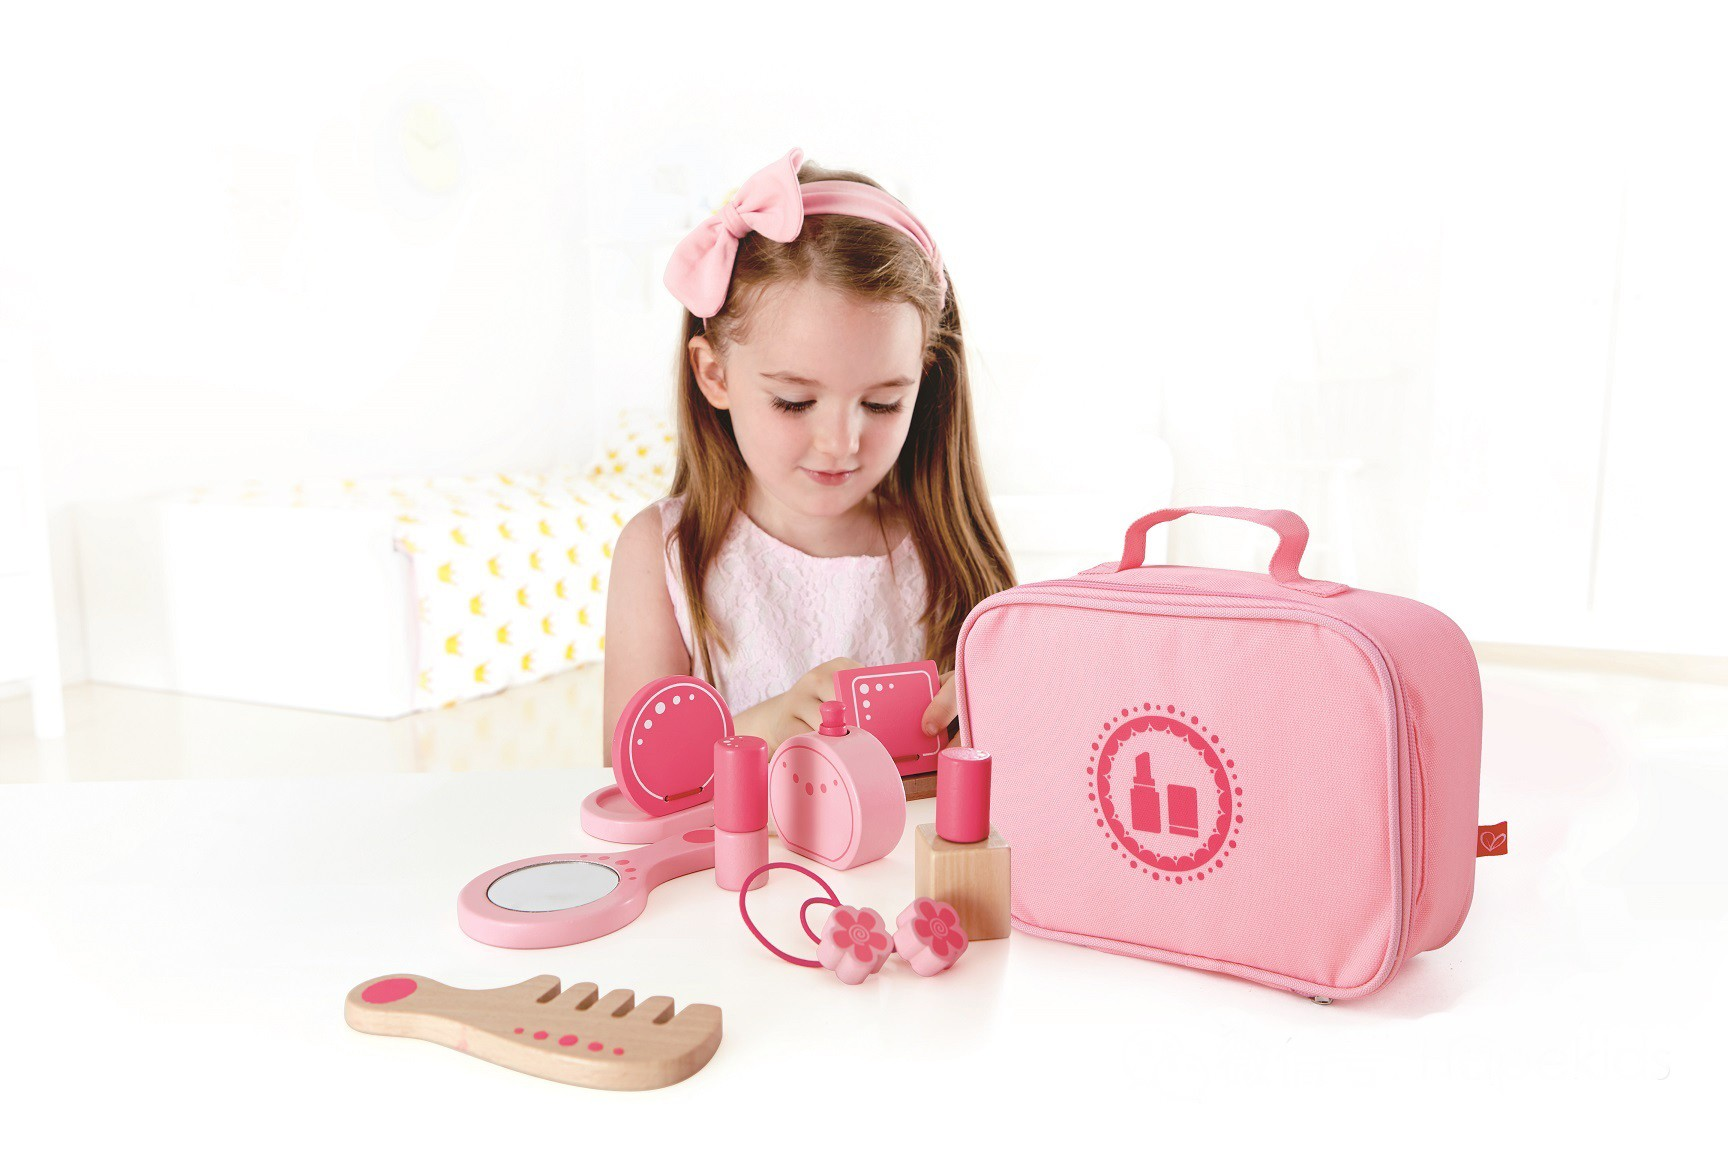 Personalised Hape Beauty Belongings Kit